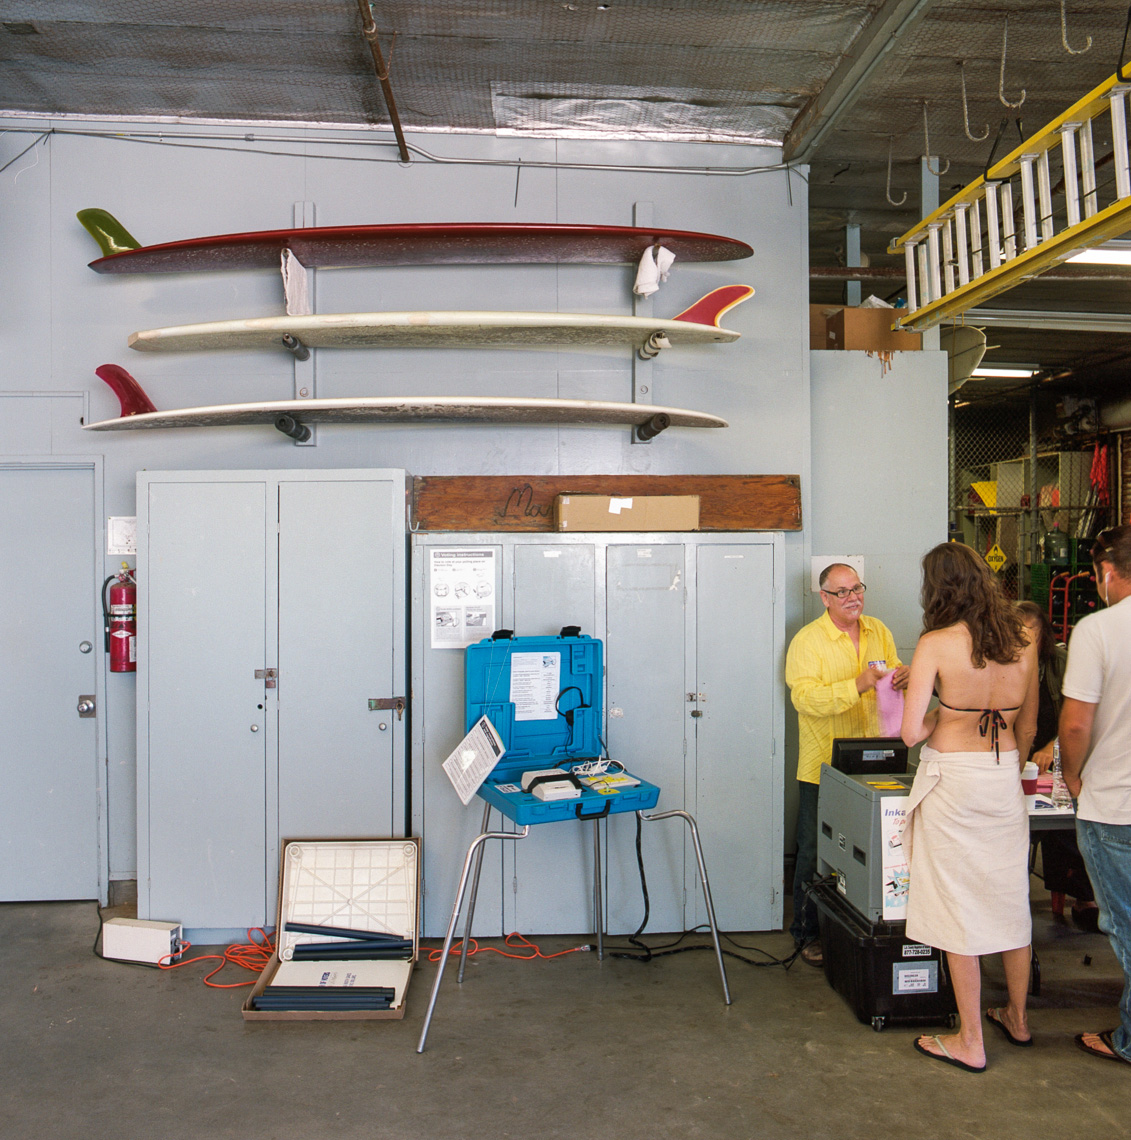 Image: © Ryan Donnell, The Polling Place Project, Beach Patrol, Los Angeles